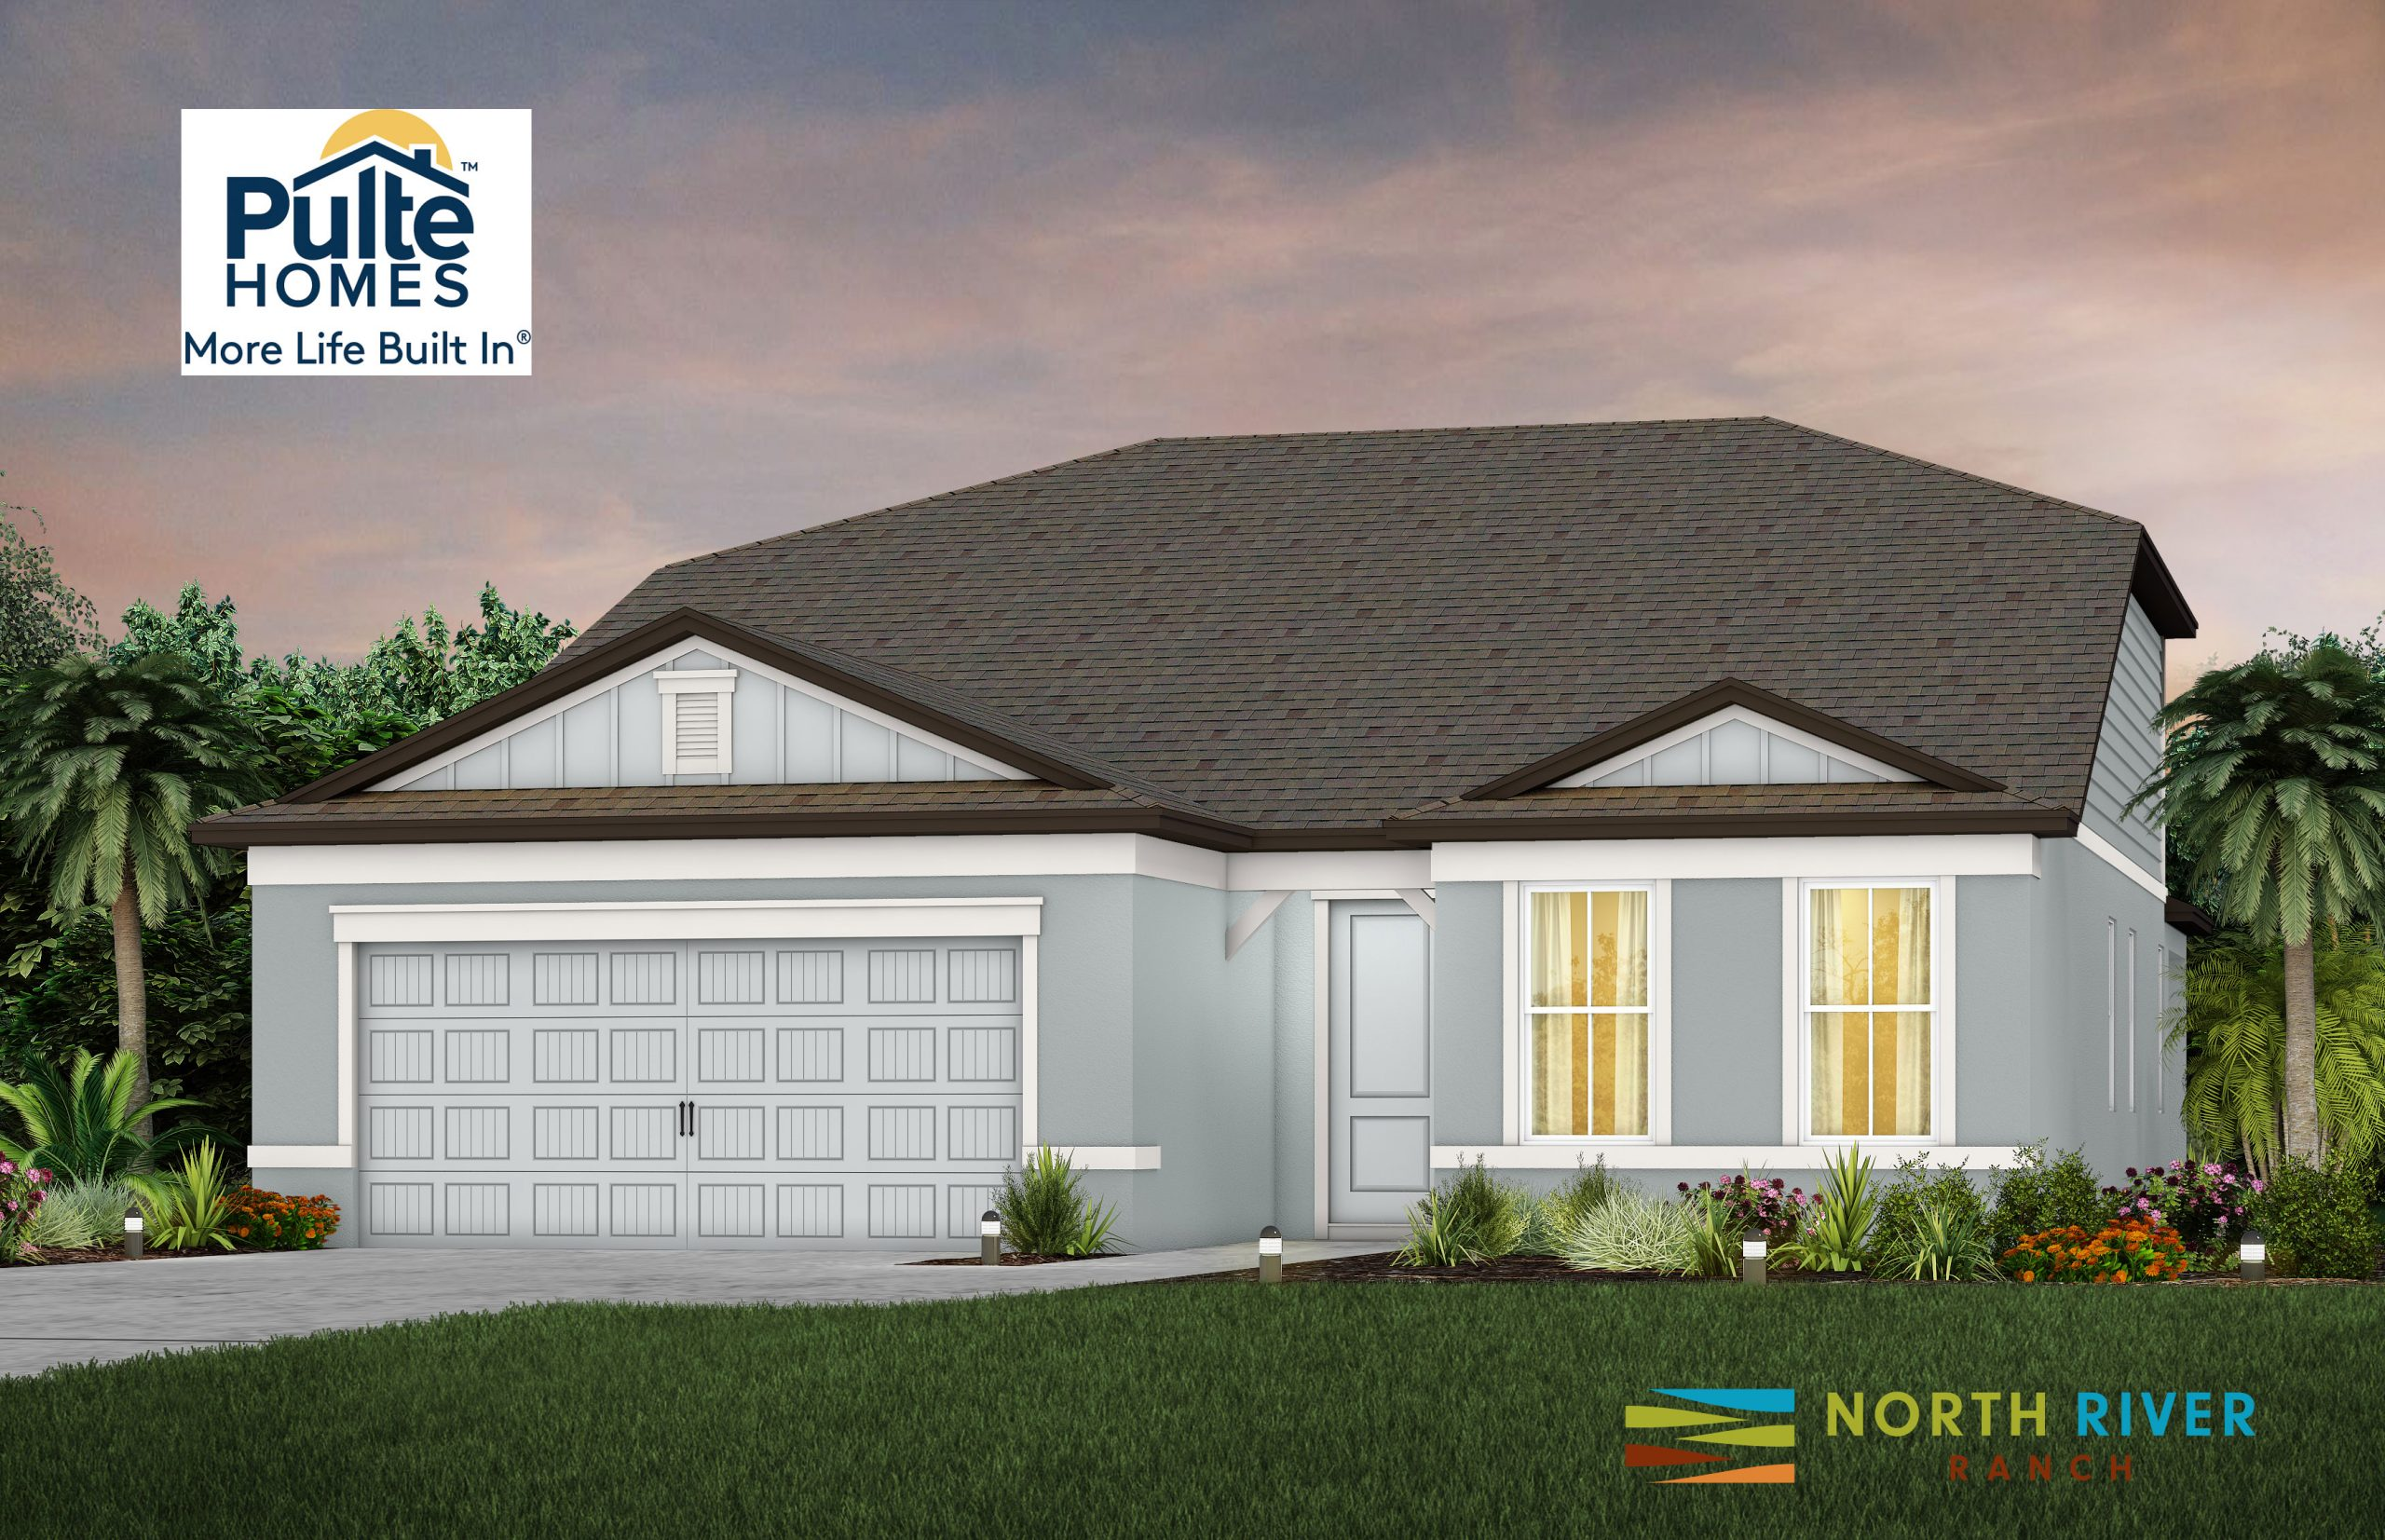 Pulte Homes North River Ranch Home Elevation